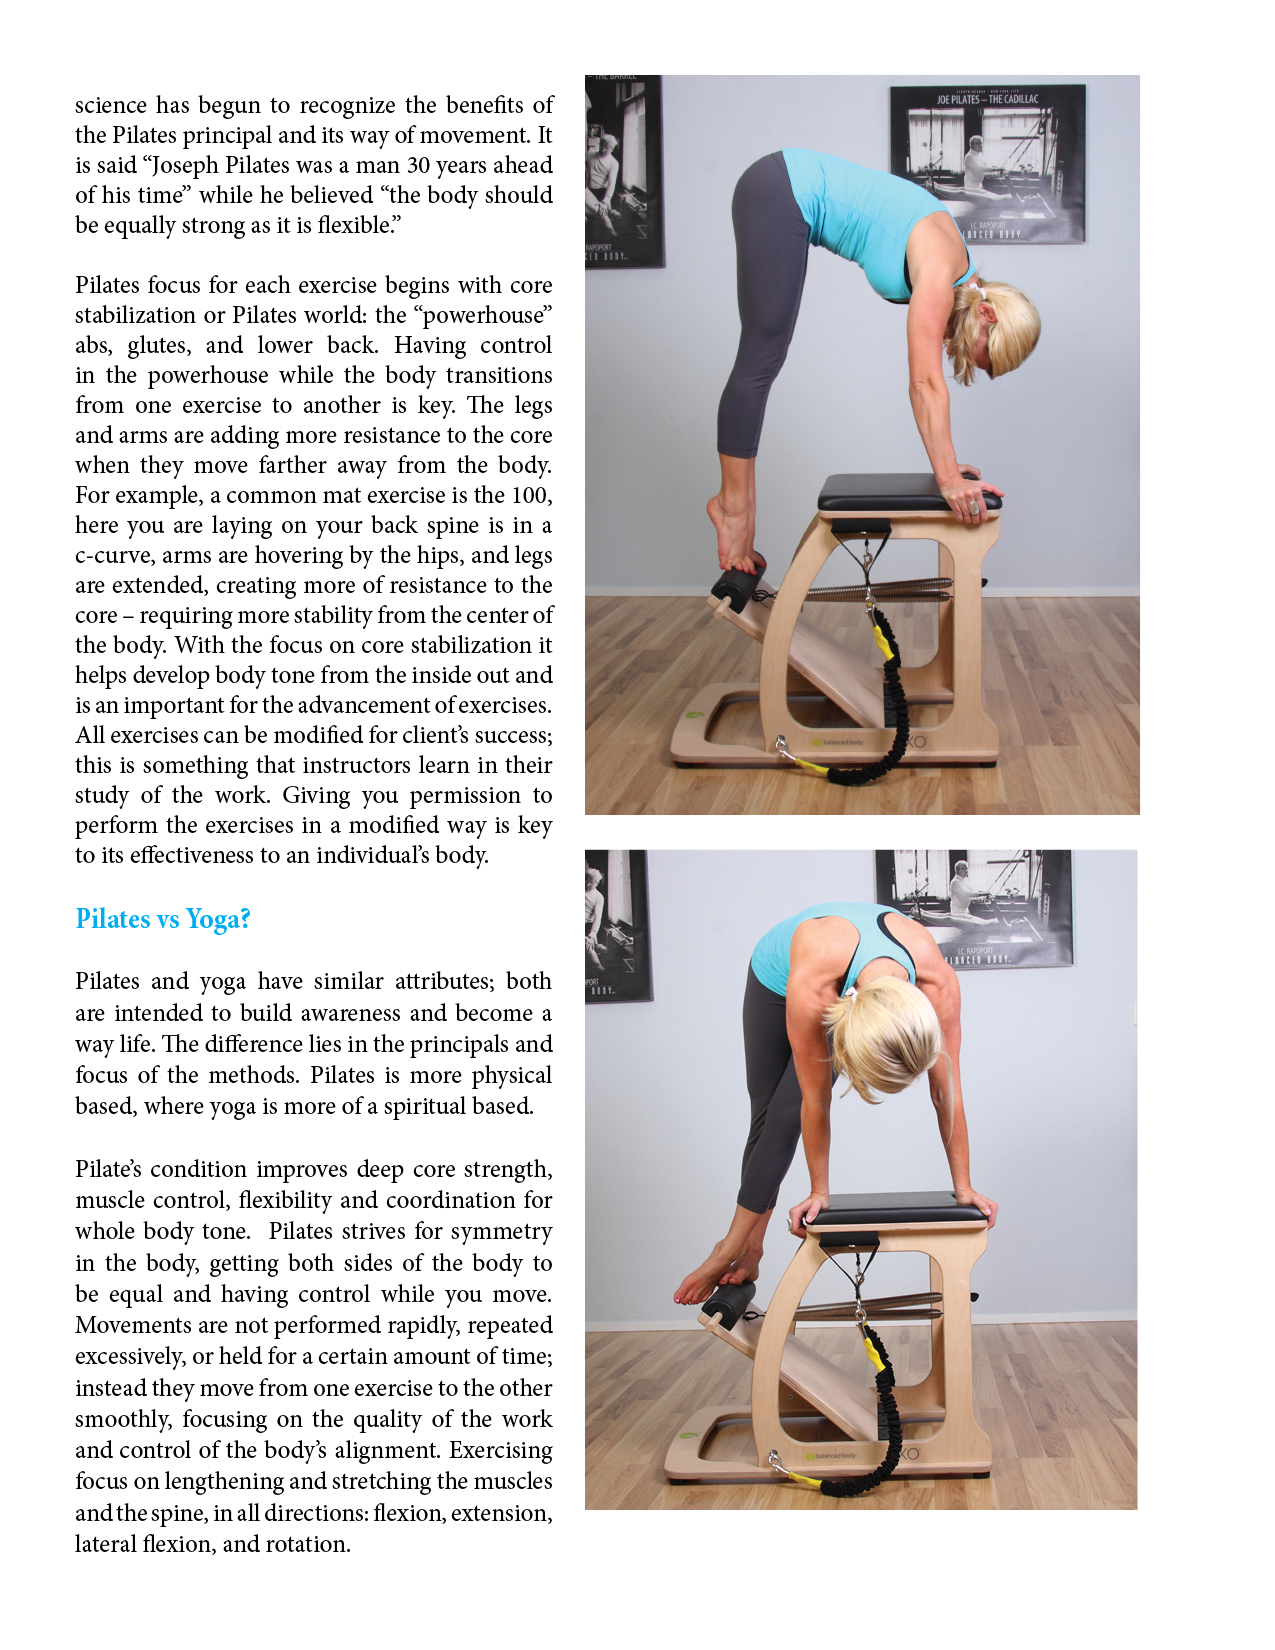 Making Better Bodies Pilates Plus By Ashleigh Rose Nw Fitness Magazine